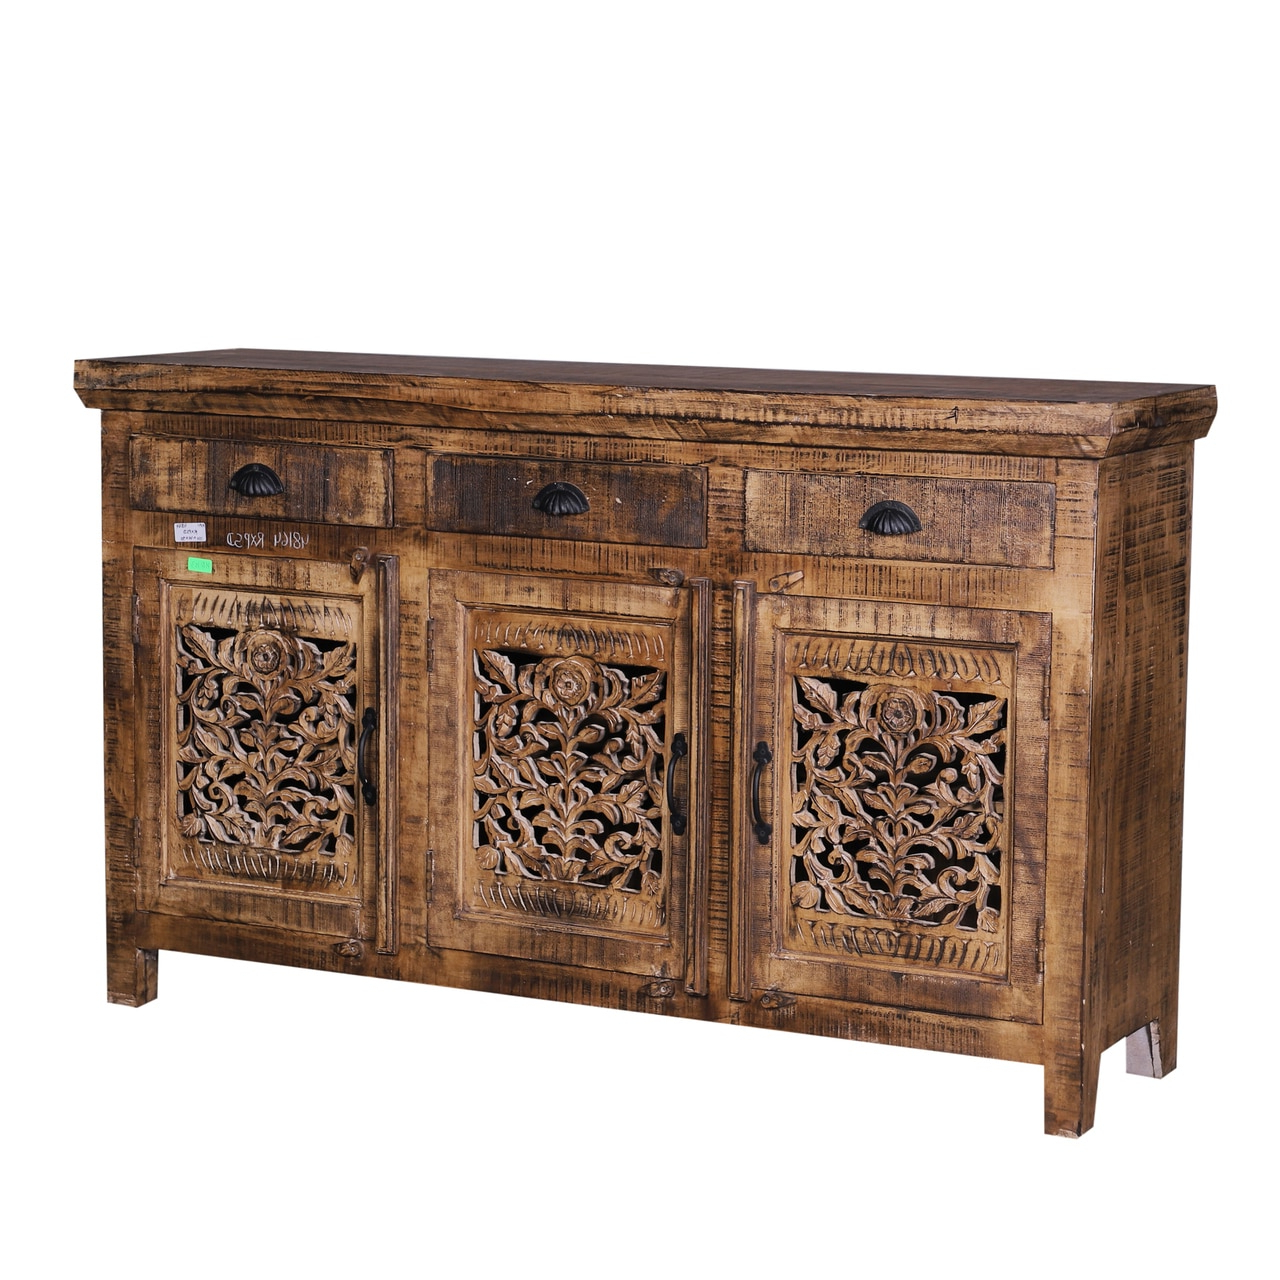 Carved Door Credenza Sideboard Buffets – Reclaimed Wood Furniture With Regard To 2019 Carved 4 Door Metal Frame Sideboards (View 7 of 20)